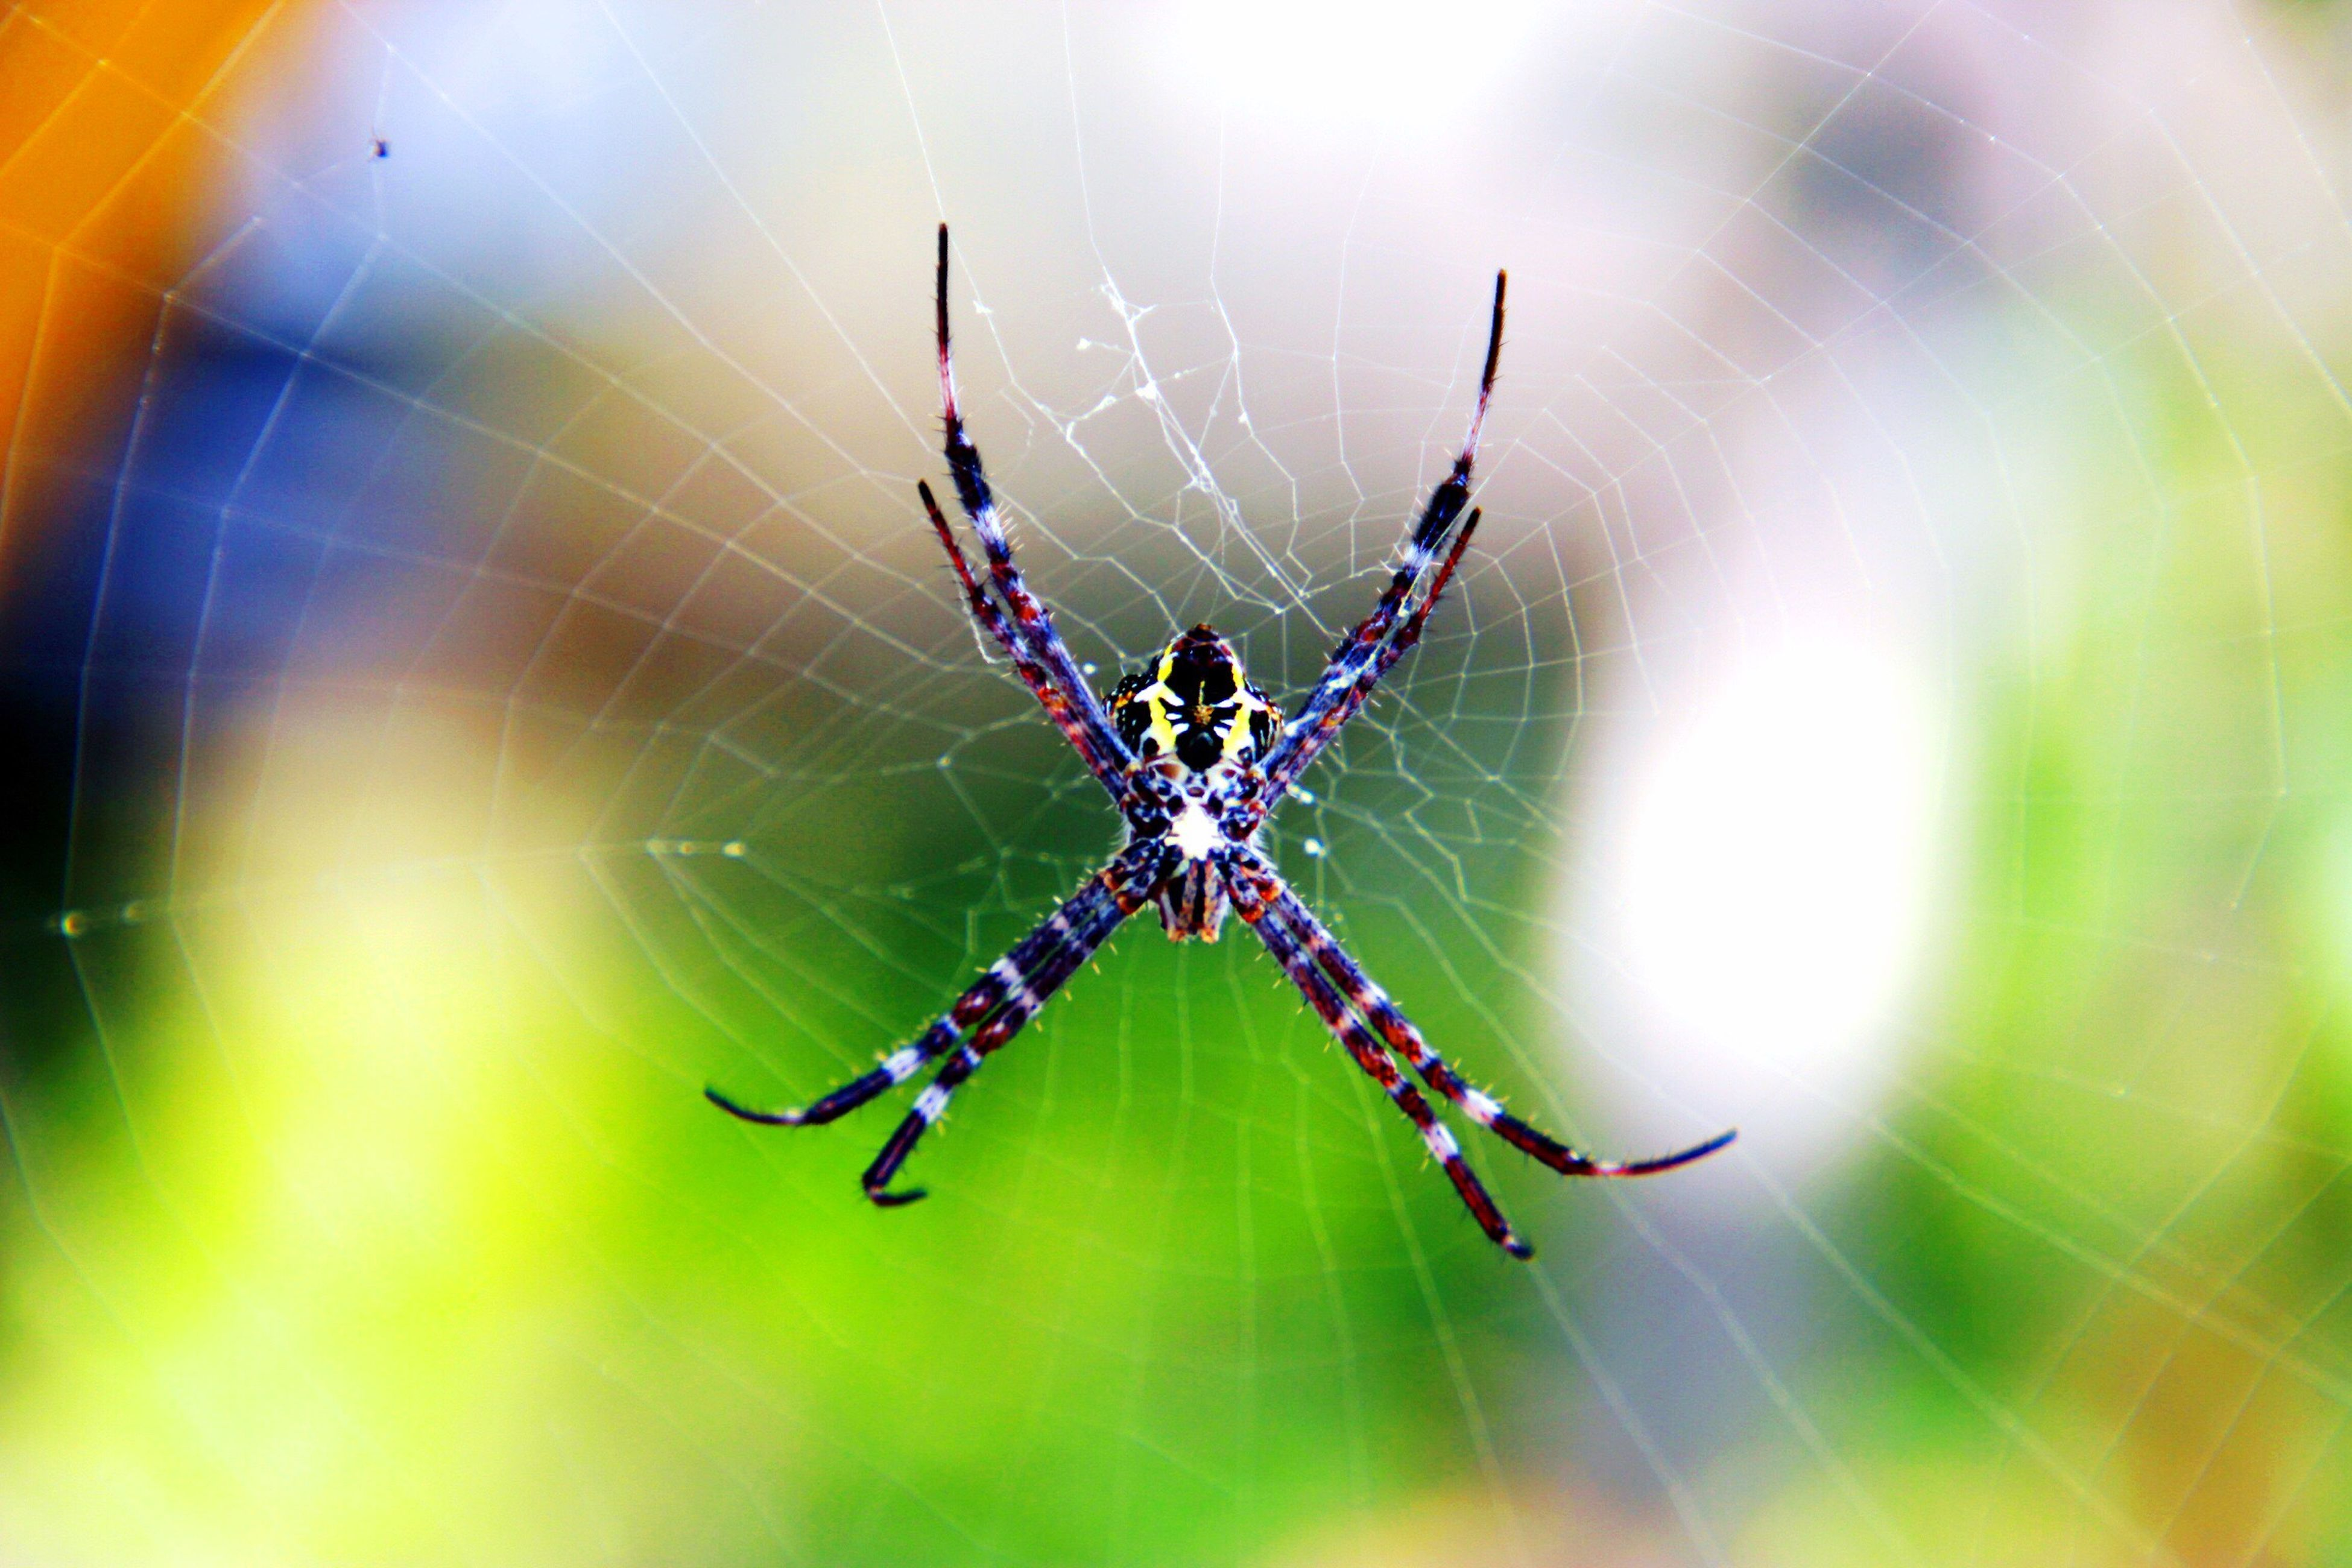 animal themes, insect, one animal, animals in the wild, wildlife, spider web, spider, focus on foreground, close-up, animal markings, natural pattern, selective focus, animal wing, arachnid, spinning, full length, nature, web, no people